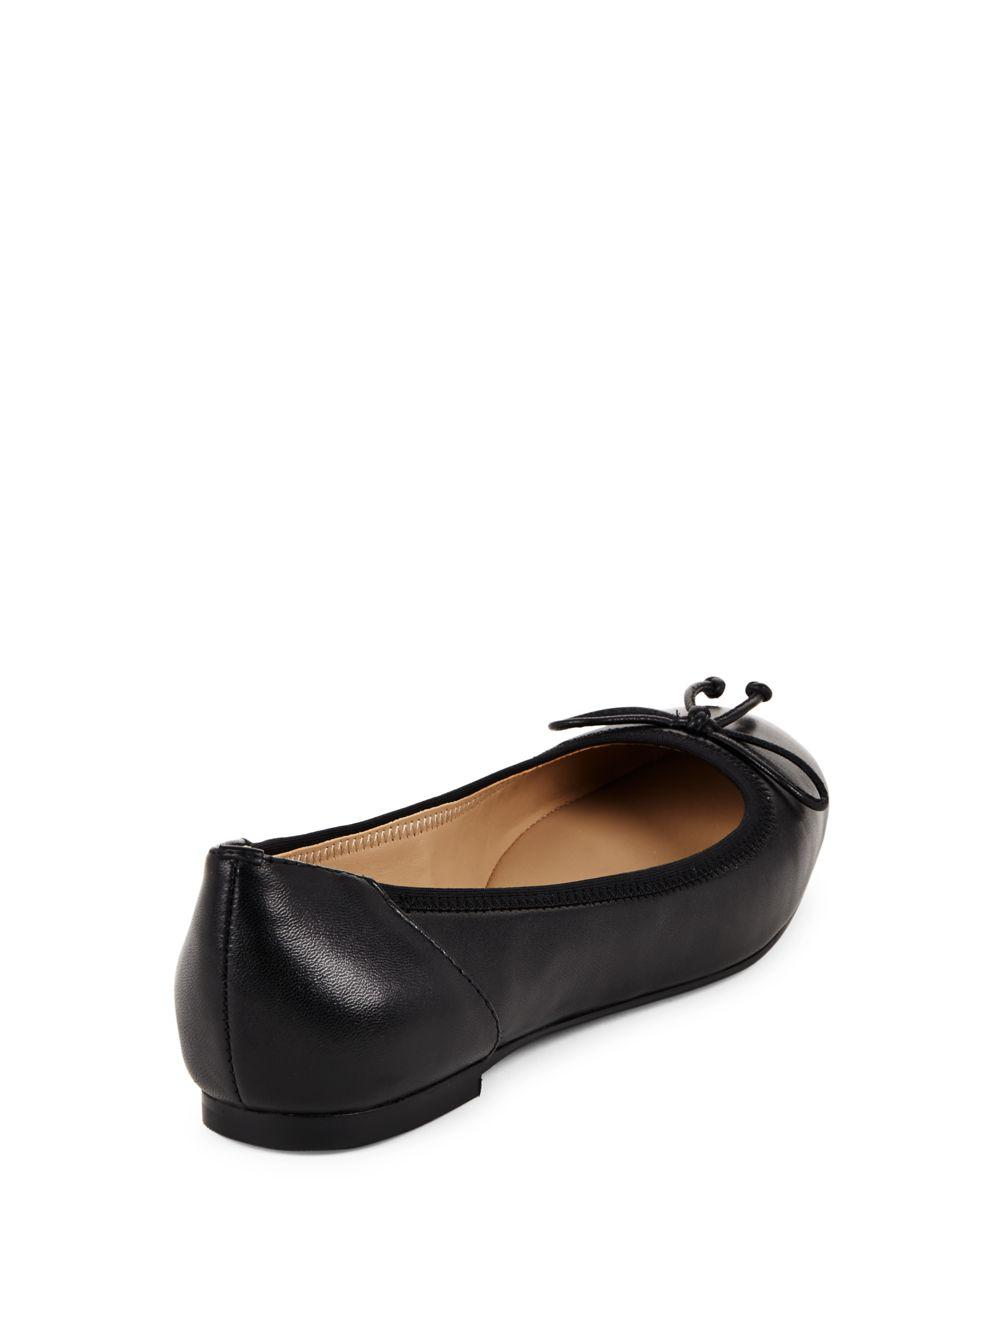 Saks Fifth Avenue Leather Round-Toe Flats sale pre order discount reliable WXowM